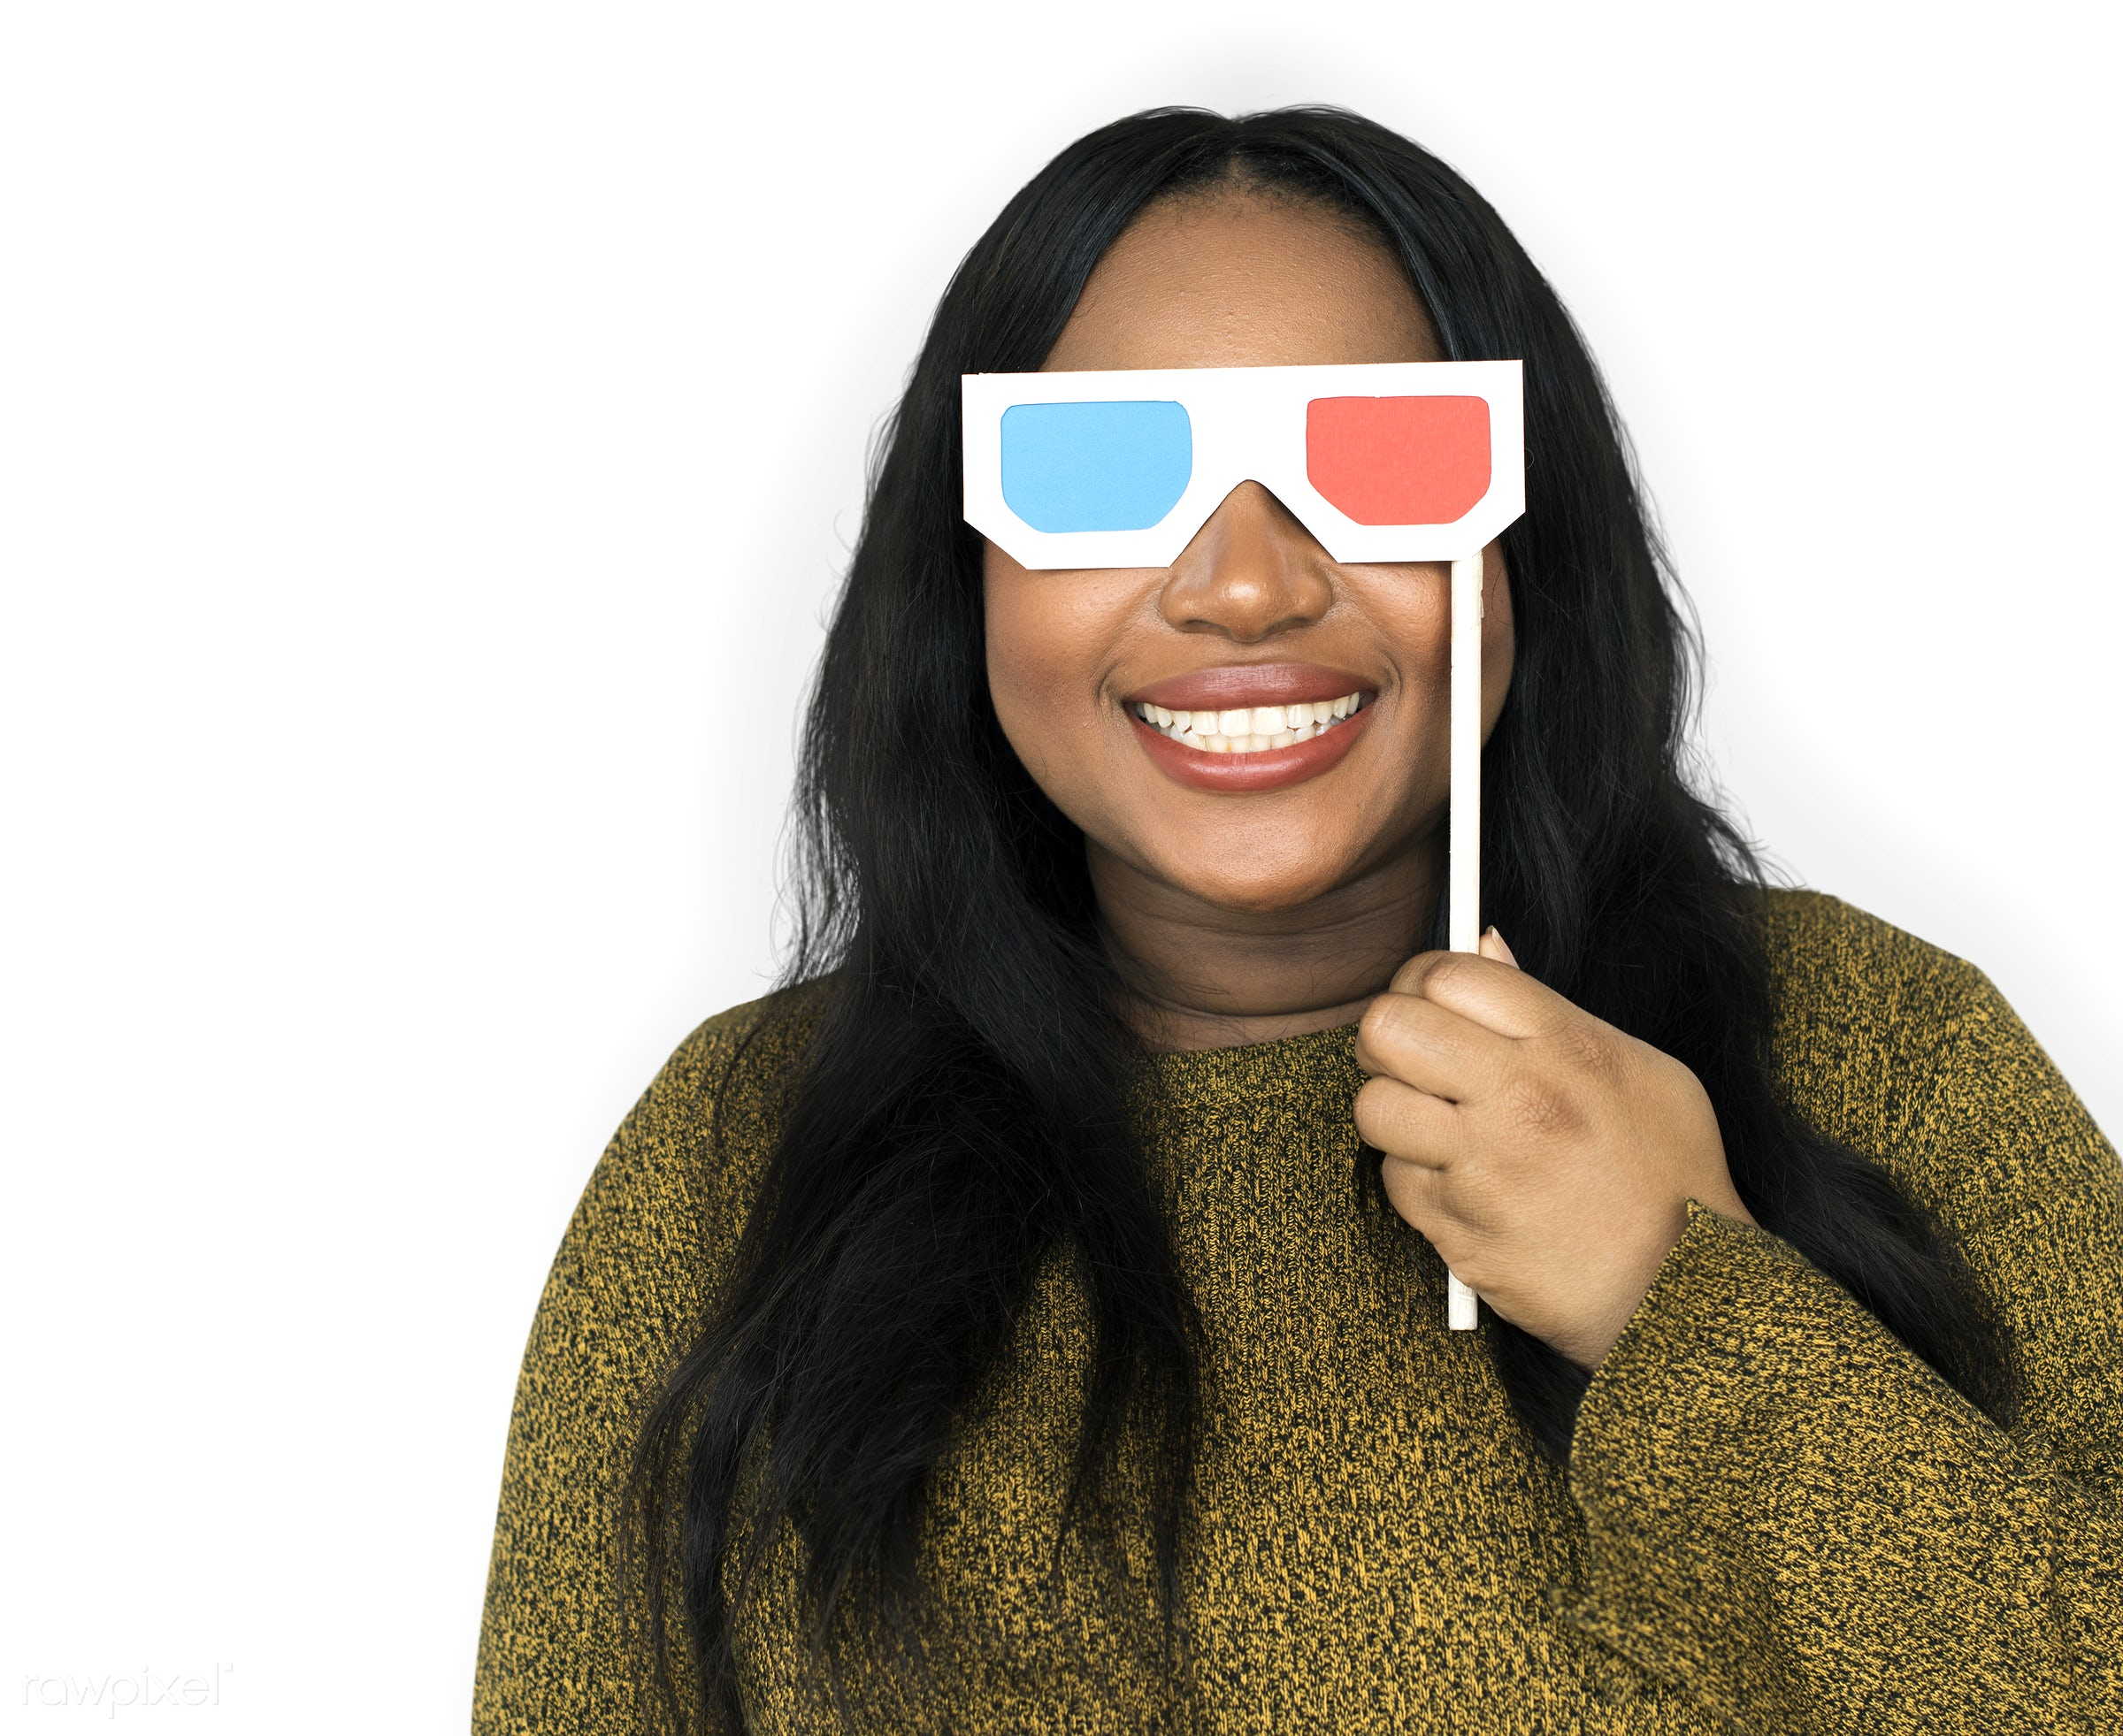 expression, person, isolated on white, recreation, people, race, three dimensional, 3-d glasses, woman, 3d blue ray,...